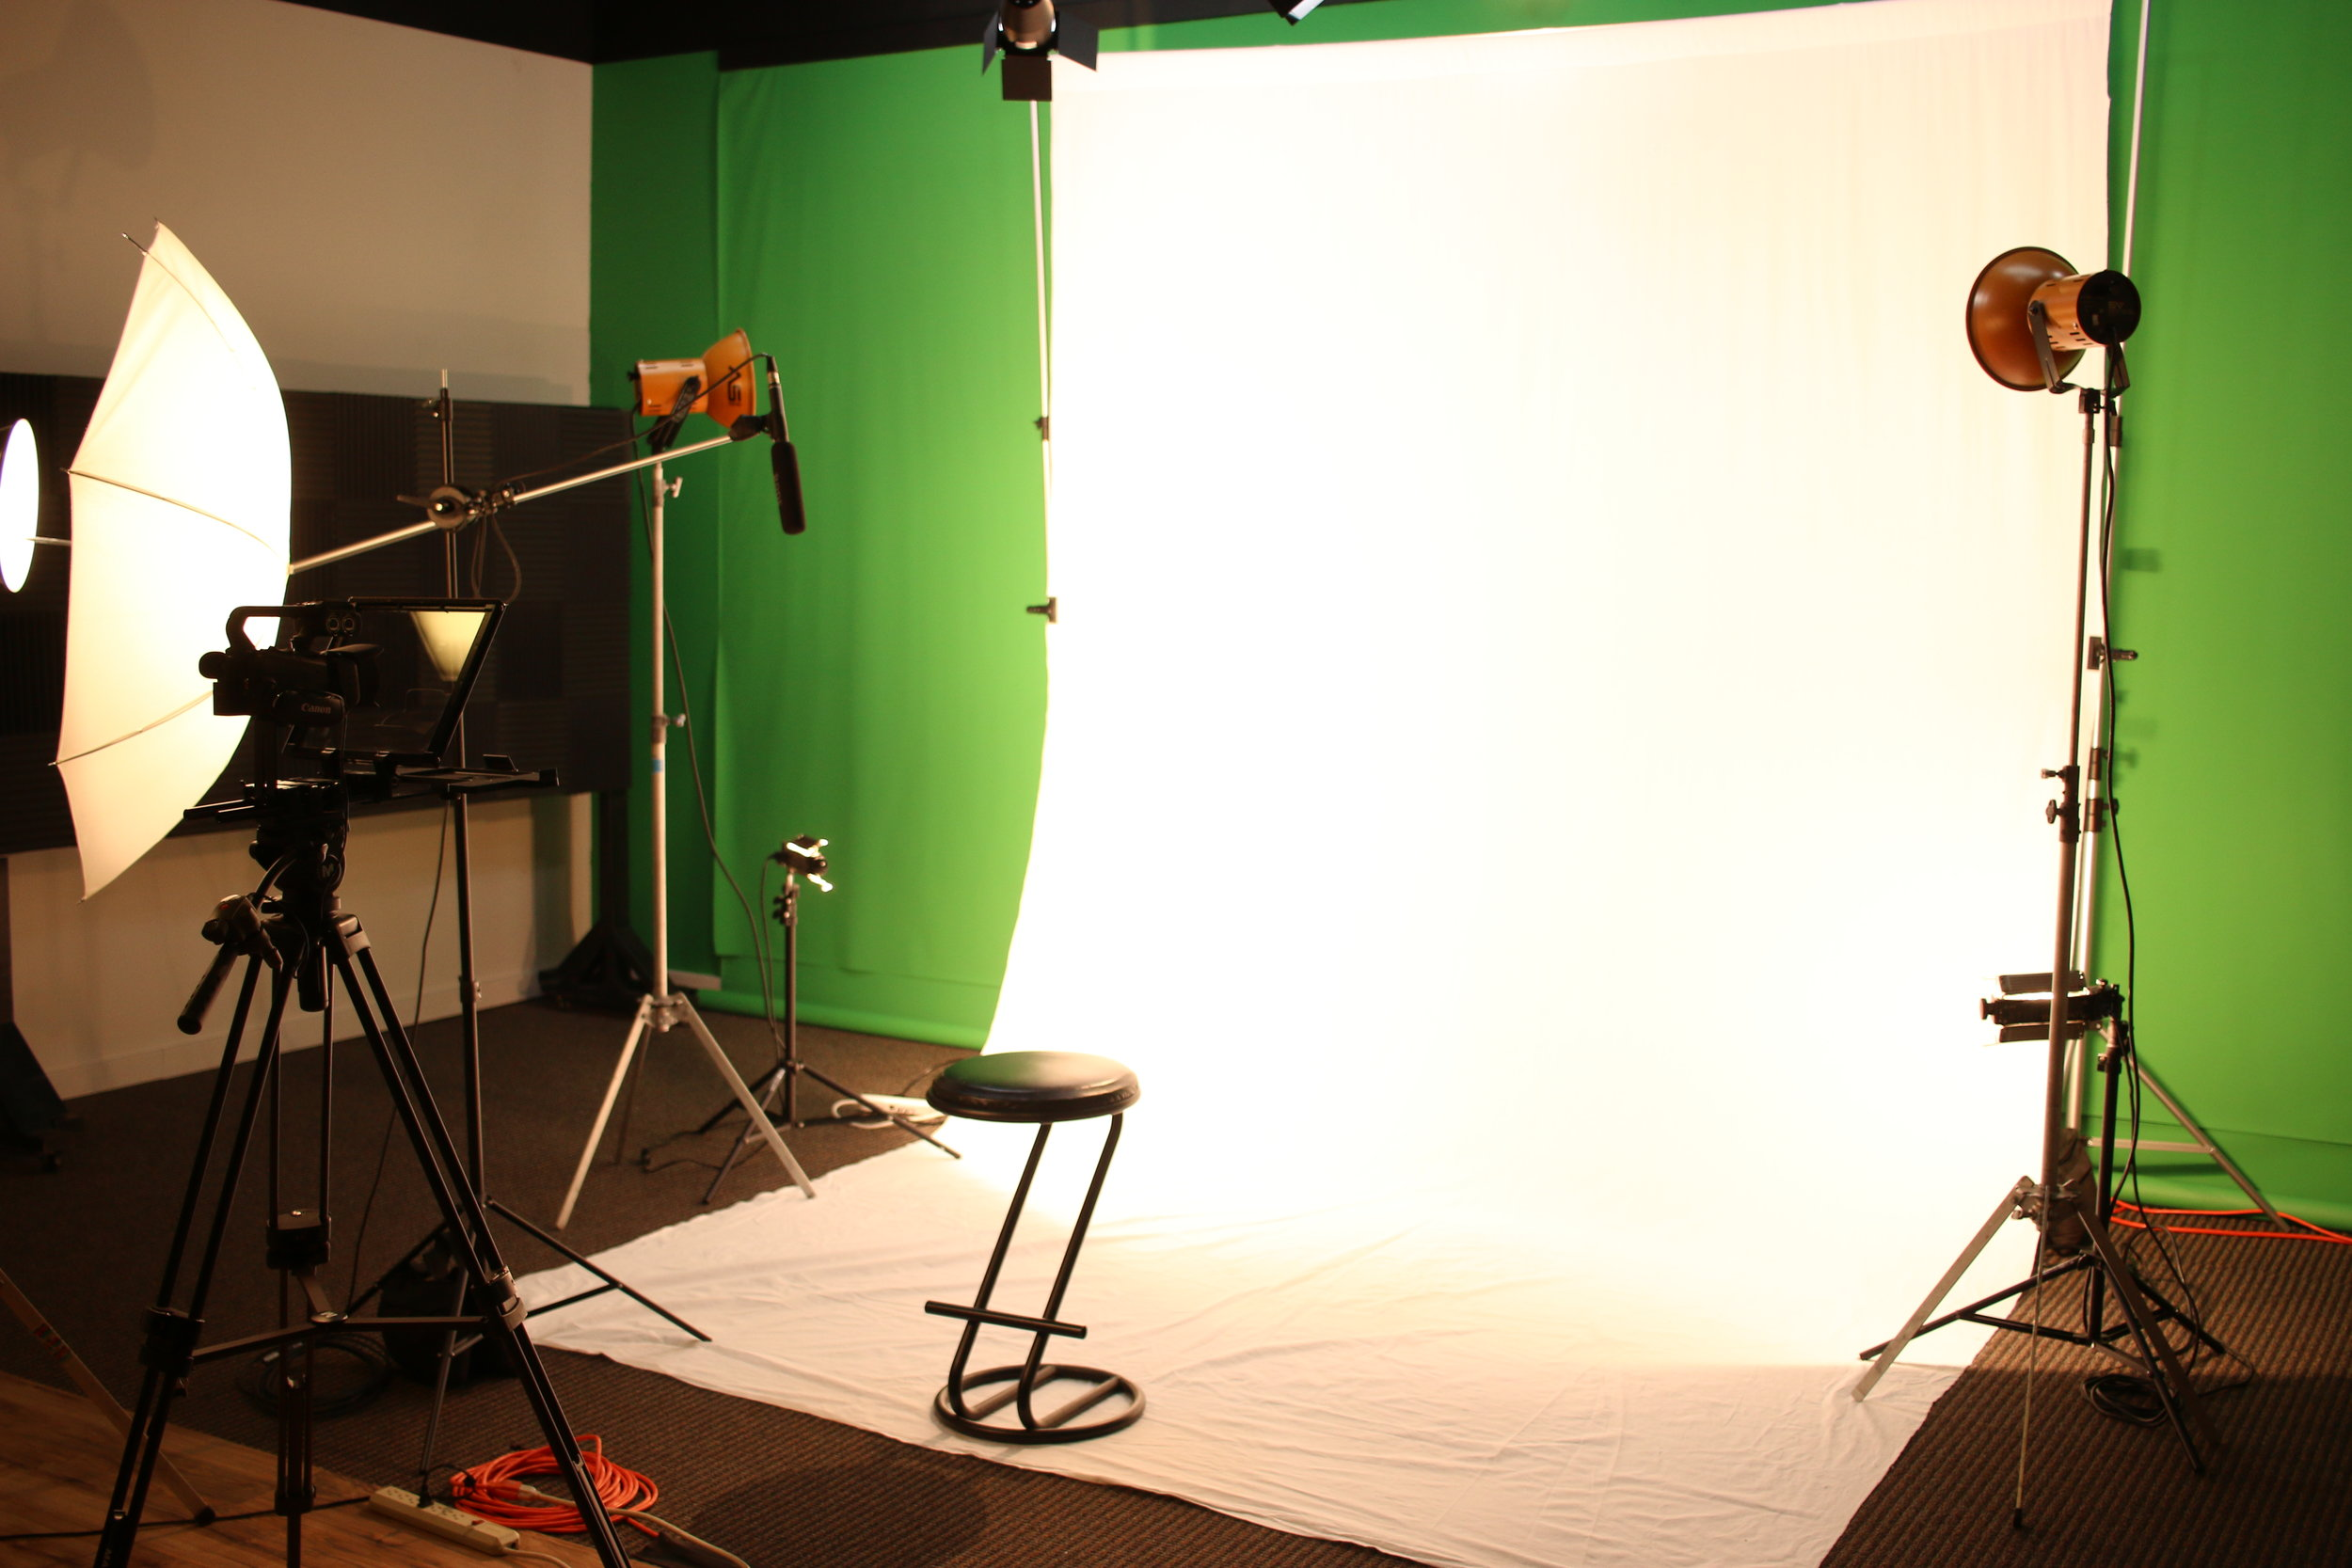 The white screen is set-up for a professional interview or product/service description.